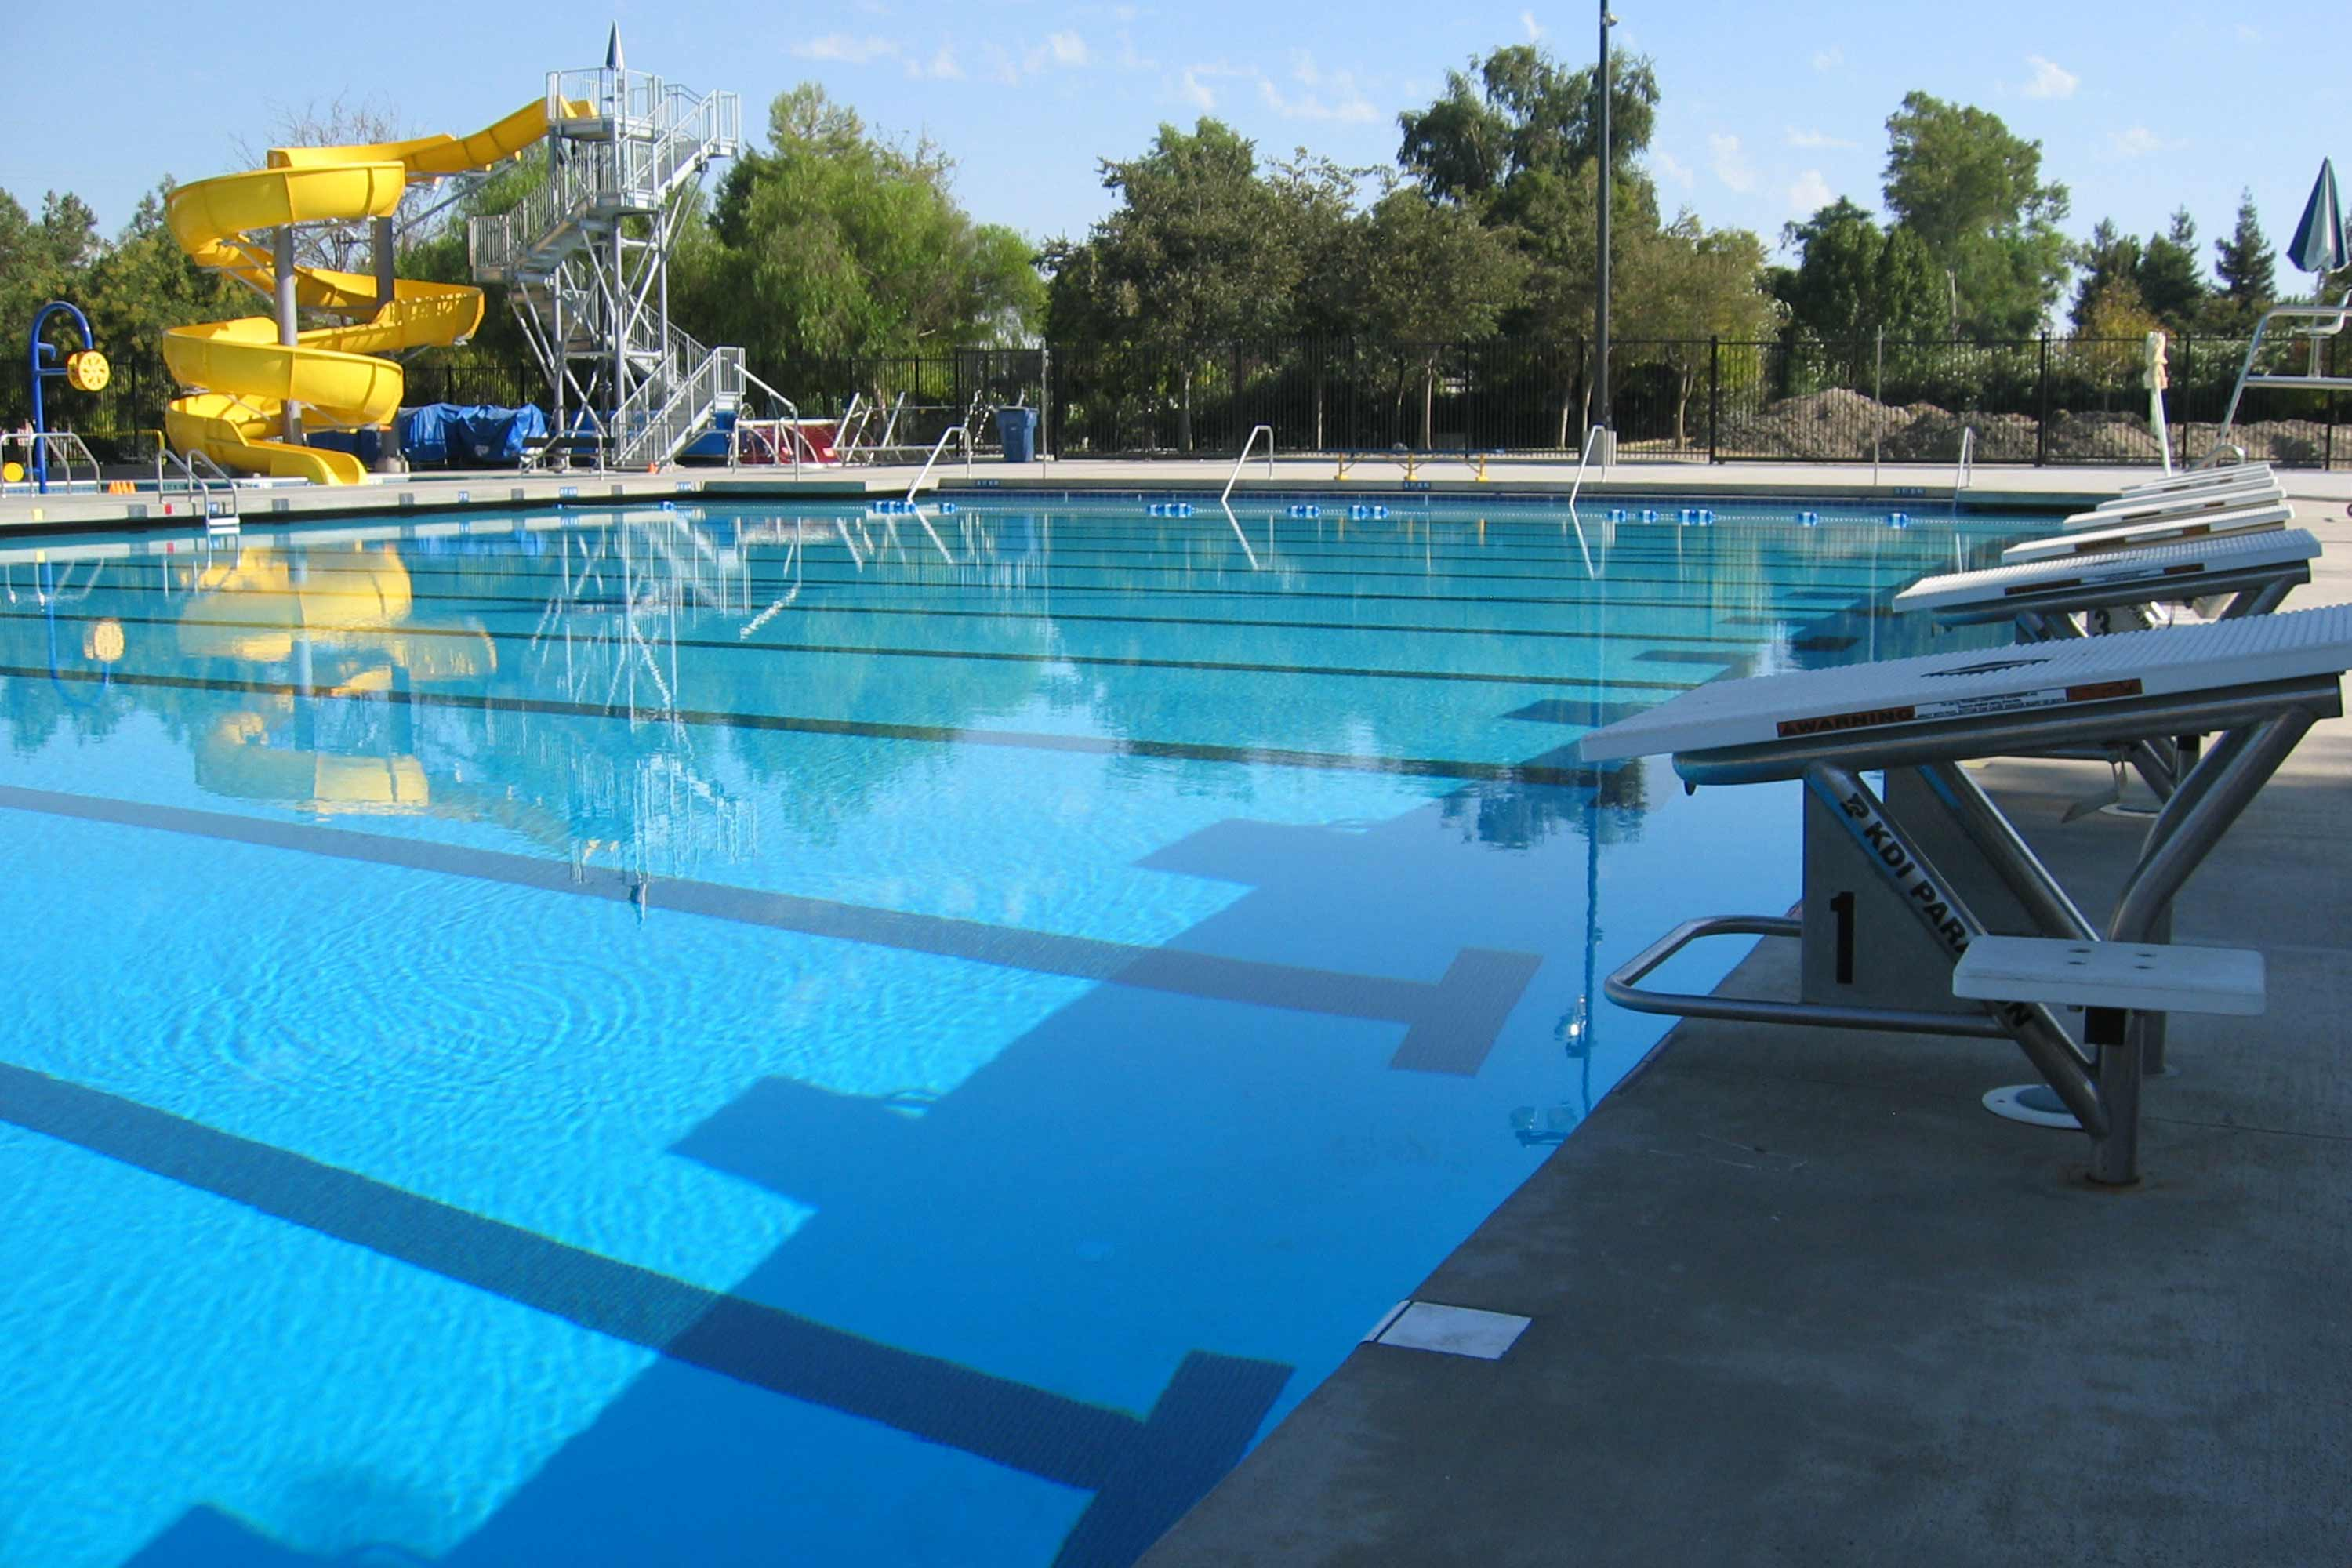 Corcoran Aquatic Center